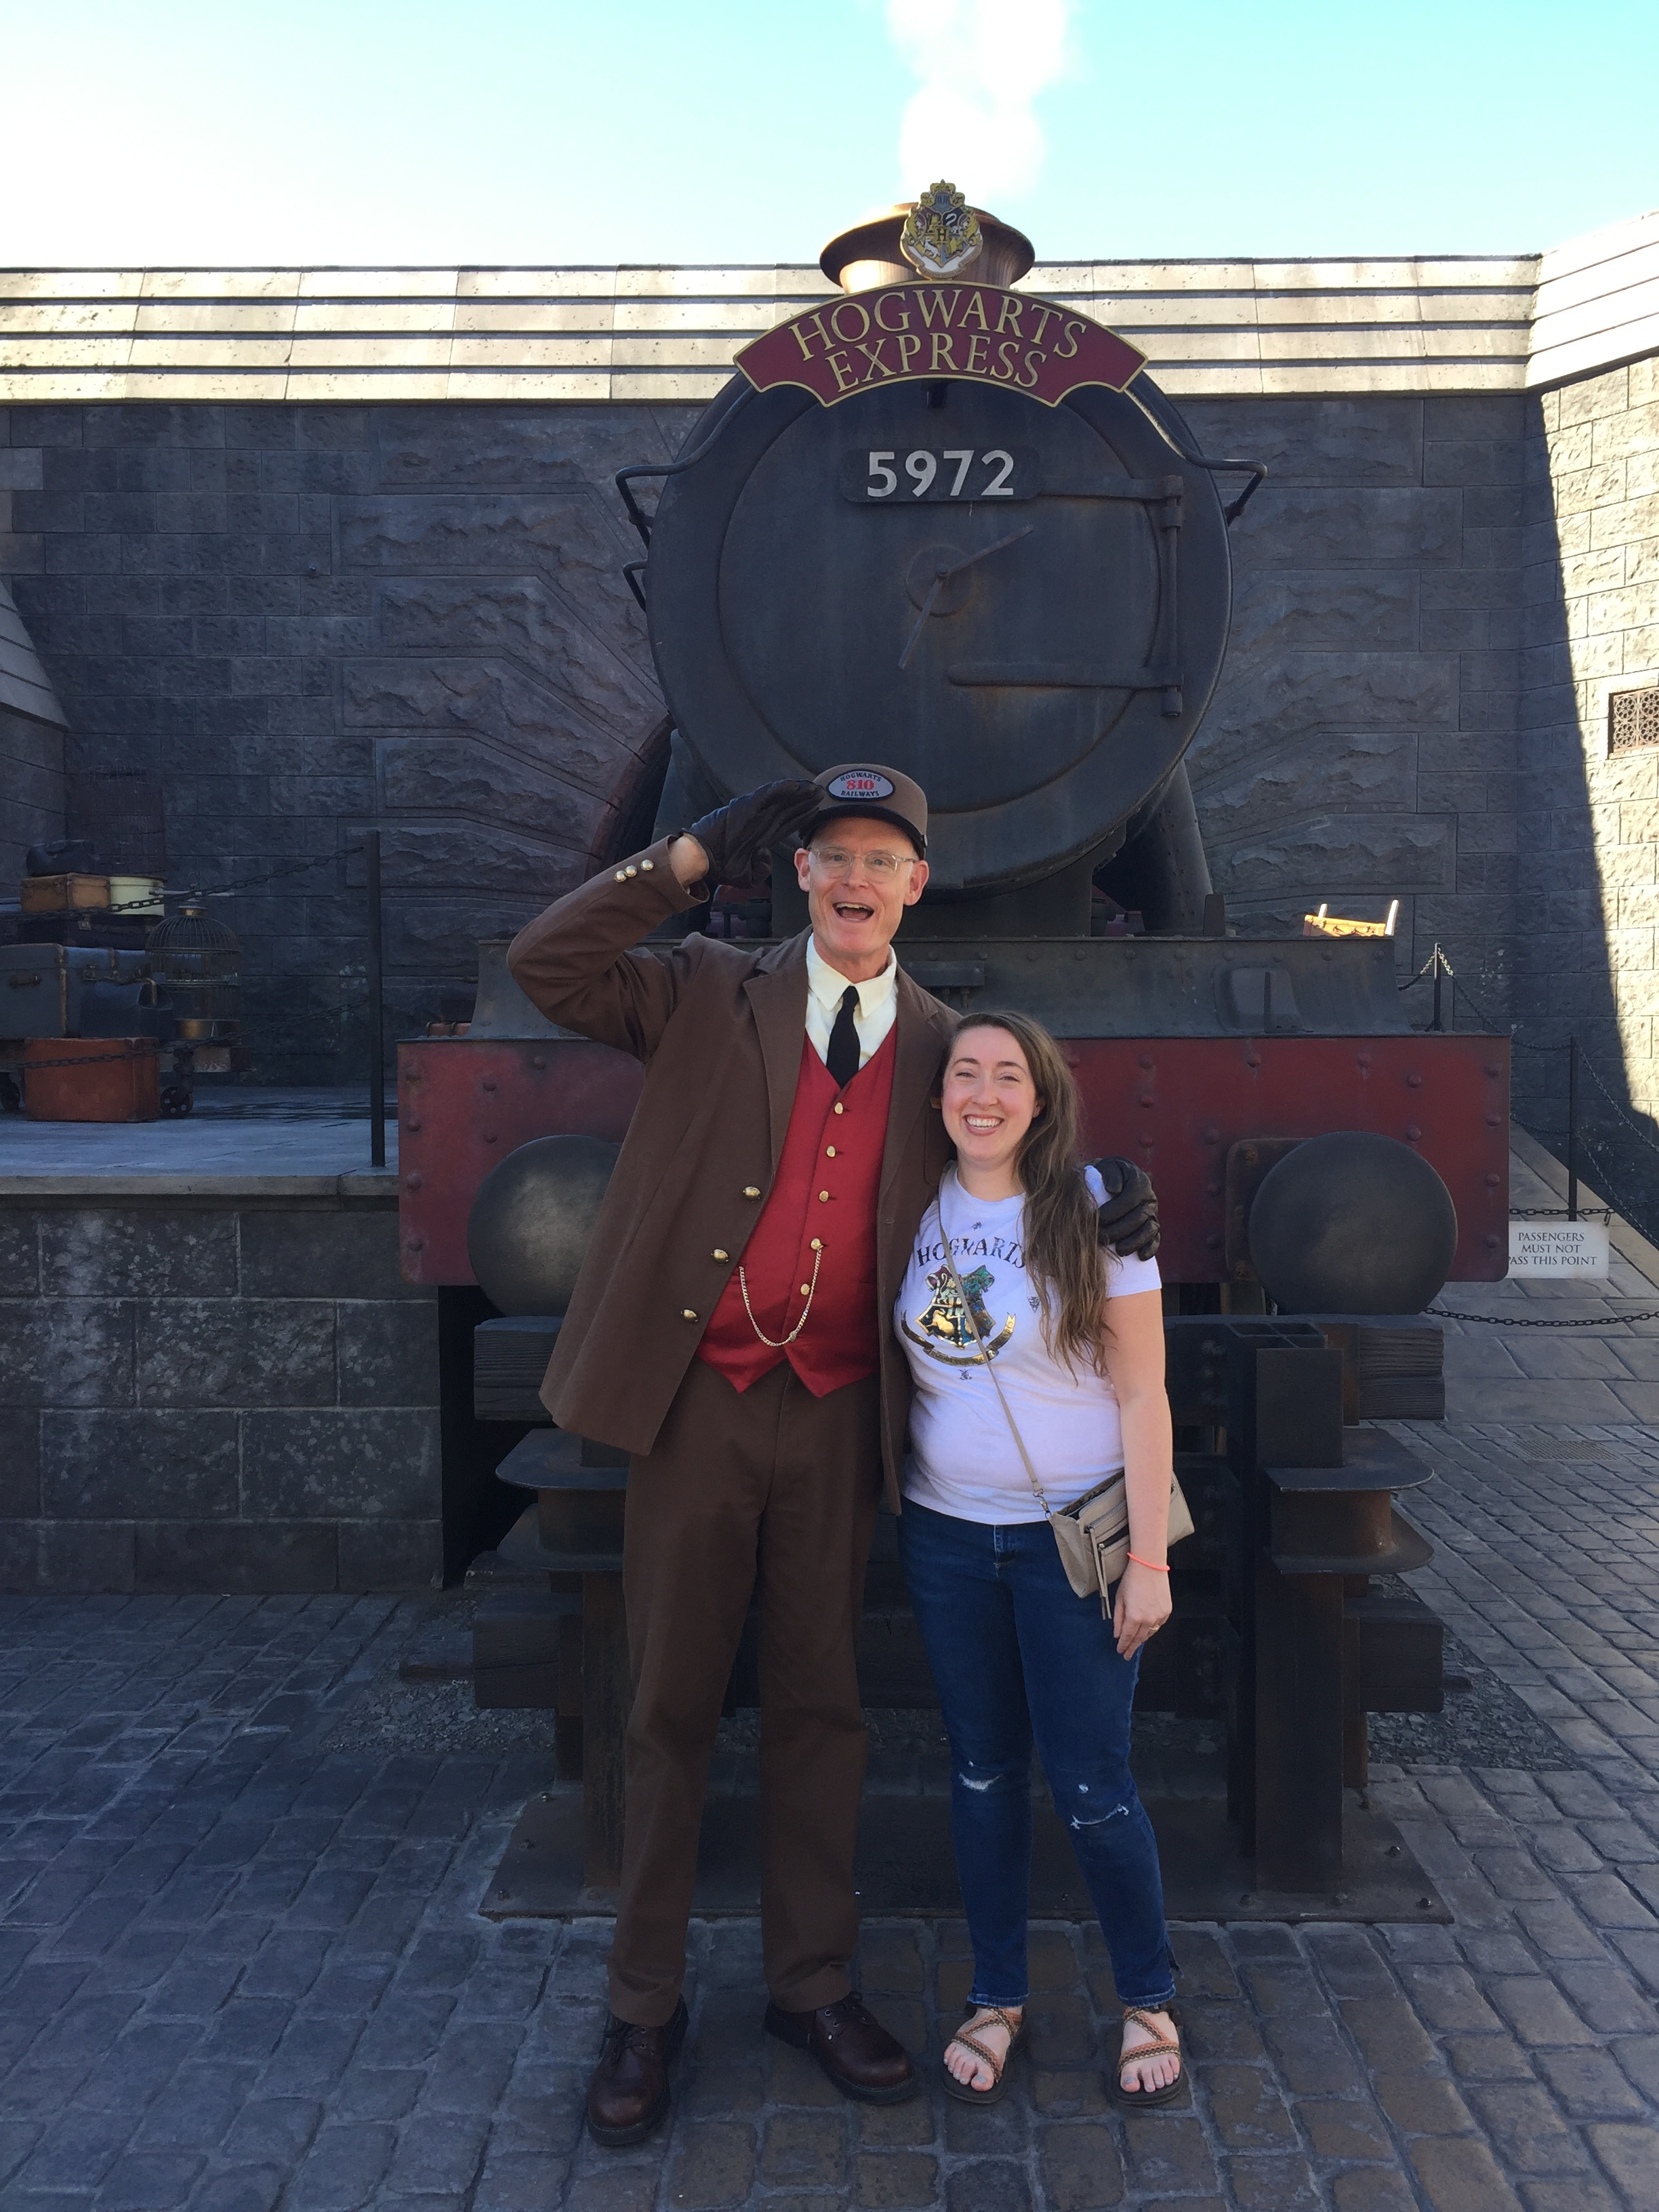 """[image description: a photo of me and the conductor of the Hogwarts Express (an actor, though I wish it were so!). He's a tall white man in a brown suit and red vest with a brown boxy hat. He has one arm around my shoulder and the other is saluting the camera. I'm standing beside him wearing jeans and a white shirt that says """"Hogwarts Alumni"""" and sandals. We're standing in front of the train and smiling at the camera.]"""